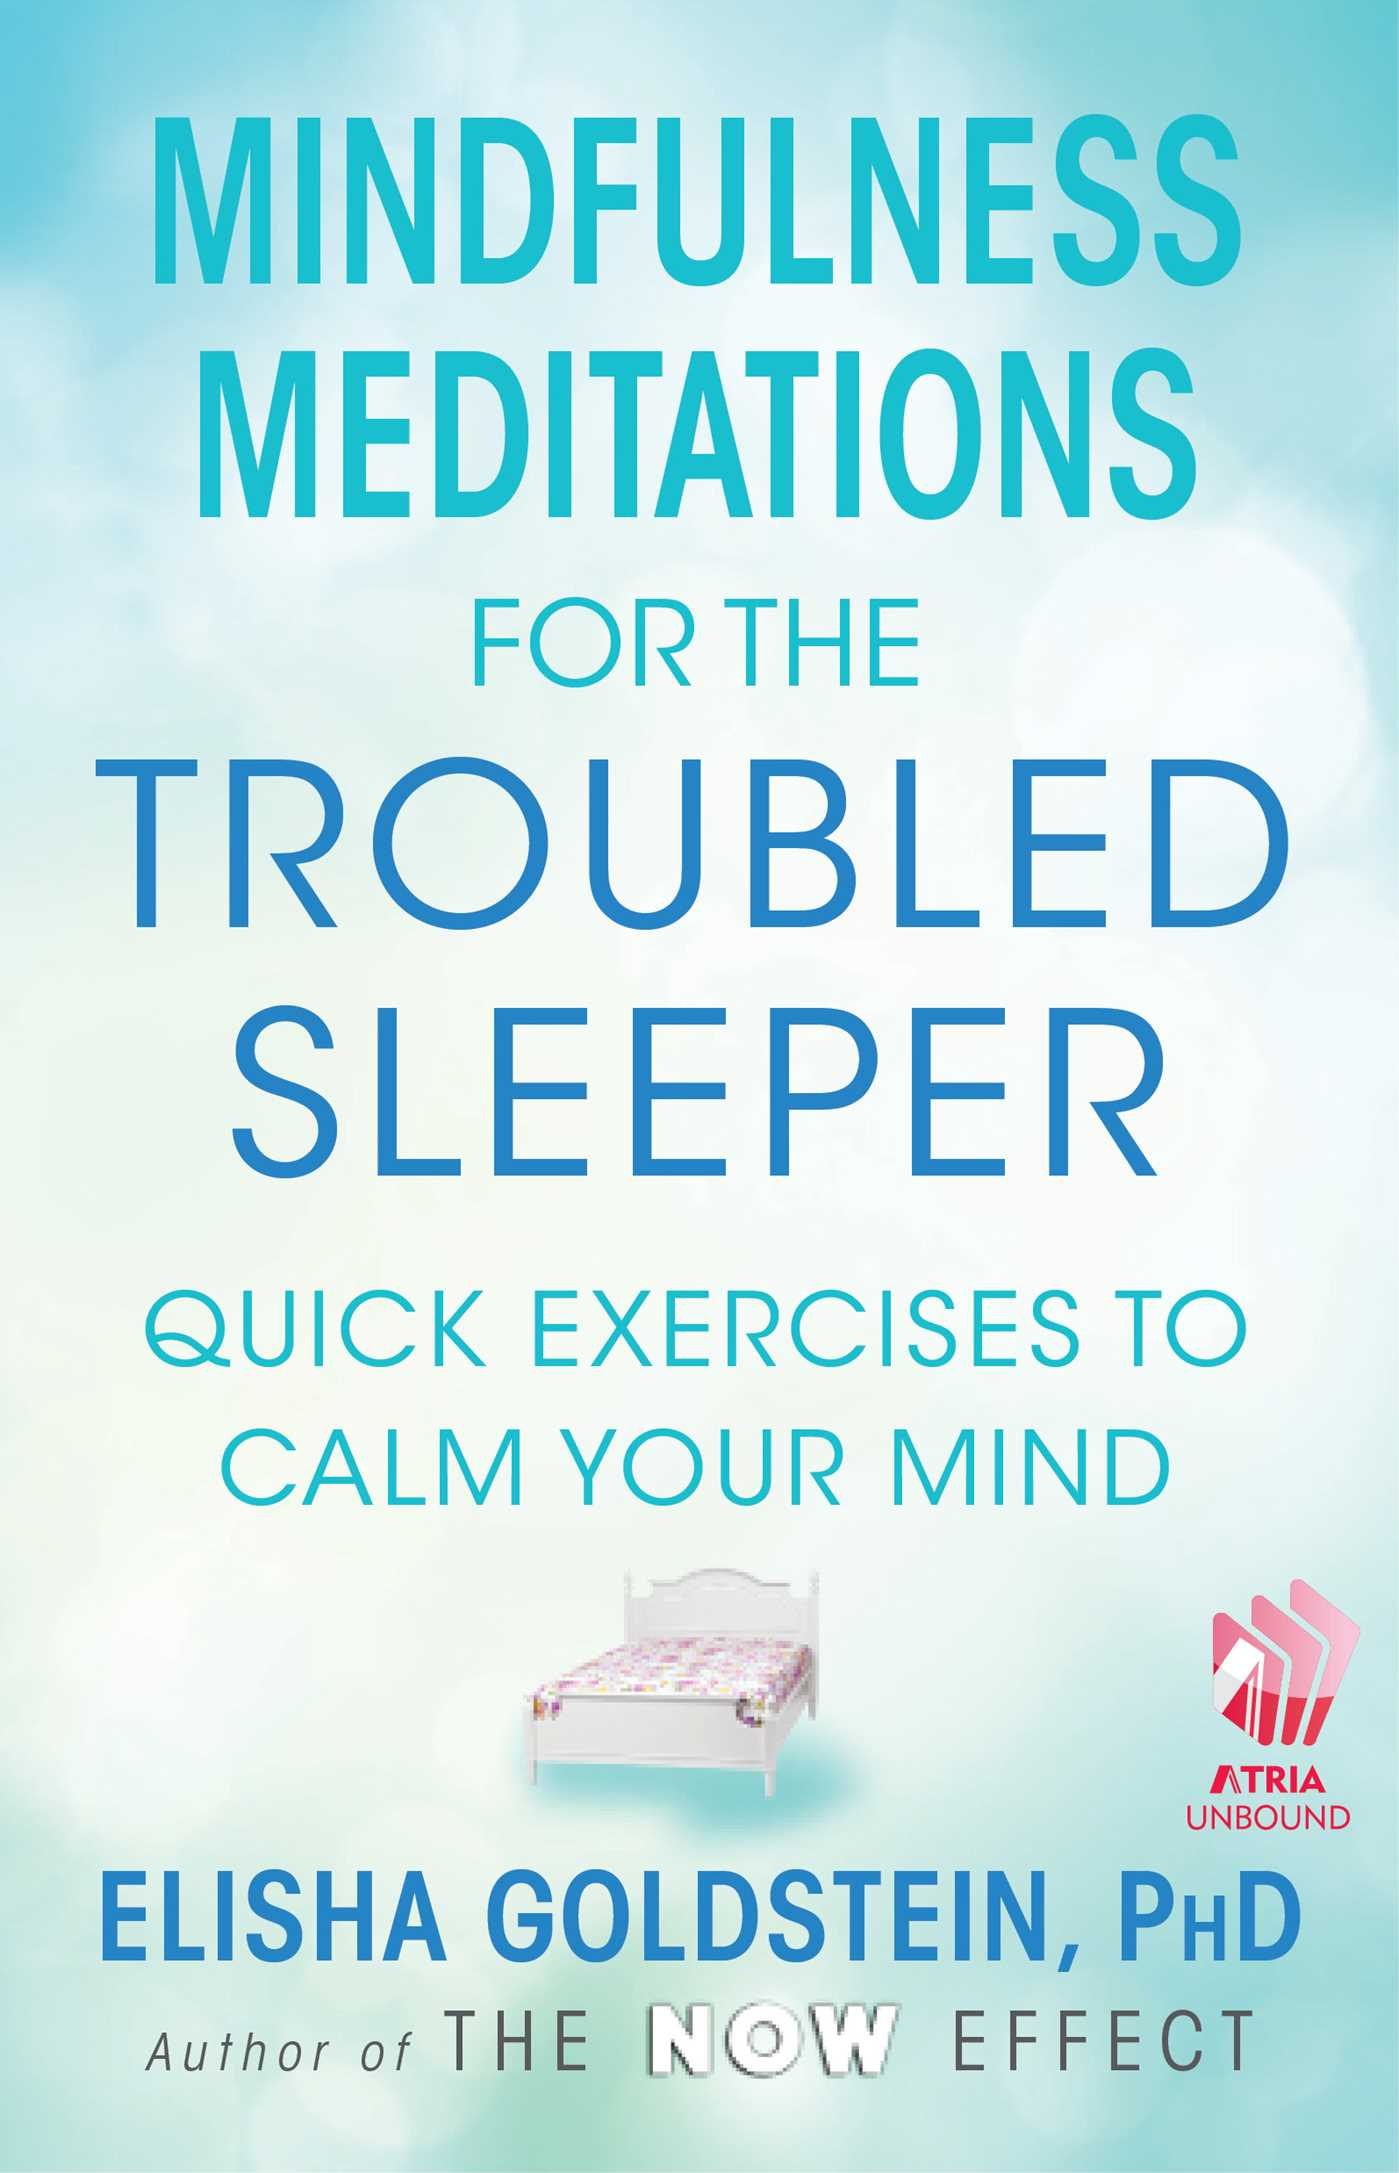 Mindfulness meditations for the troubled sleeper 9781451683998 hr